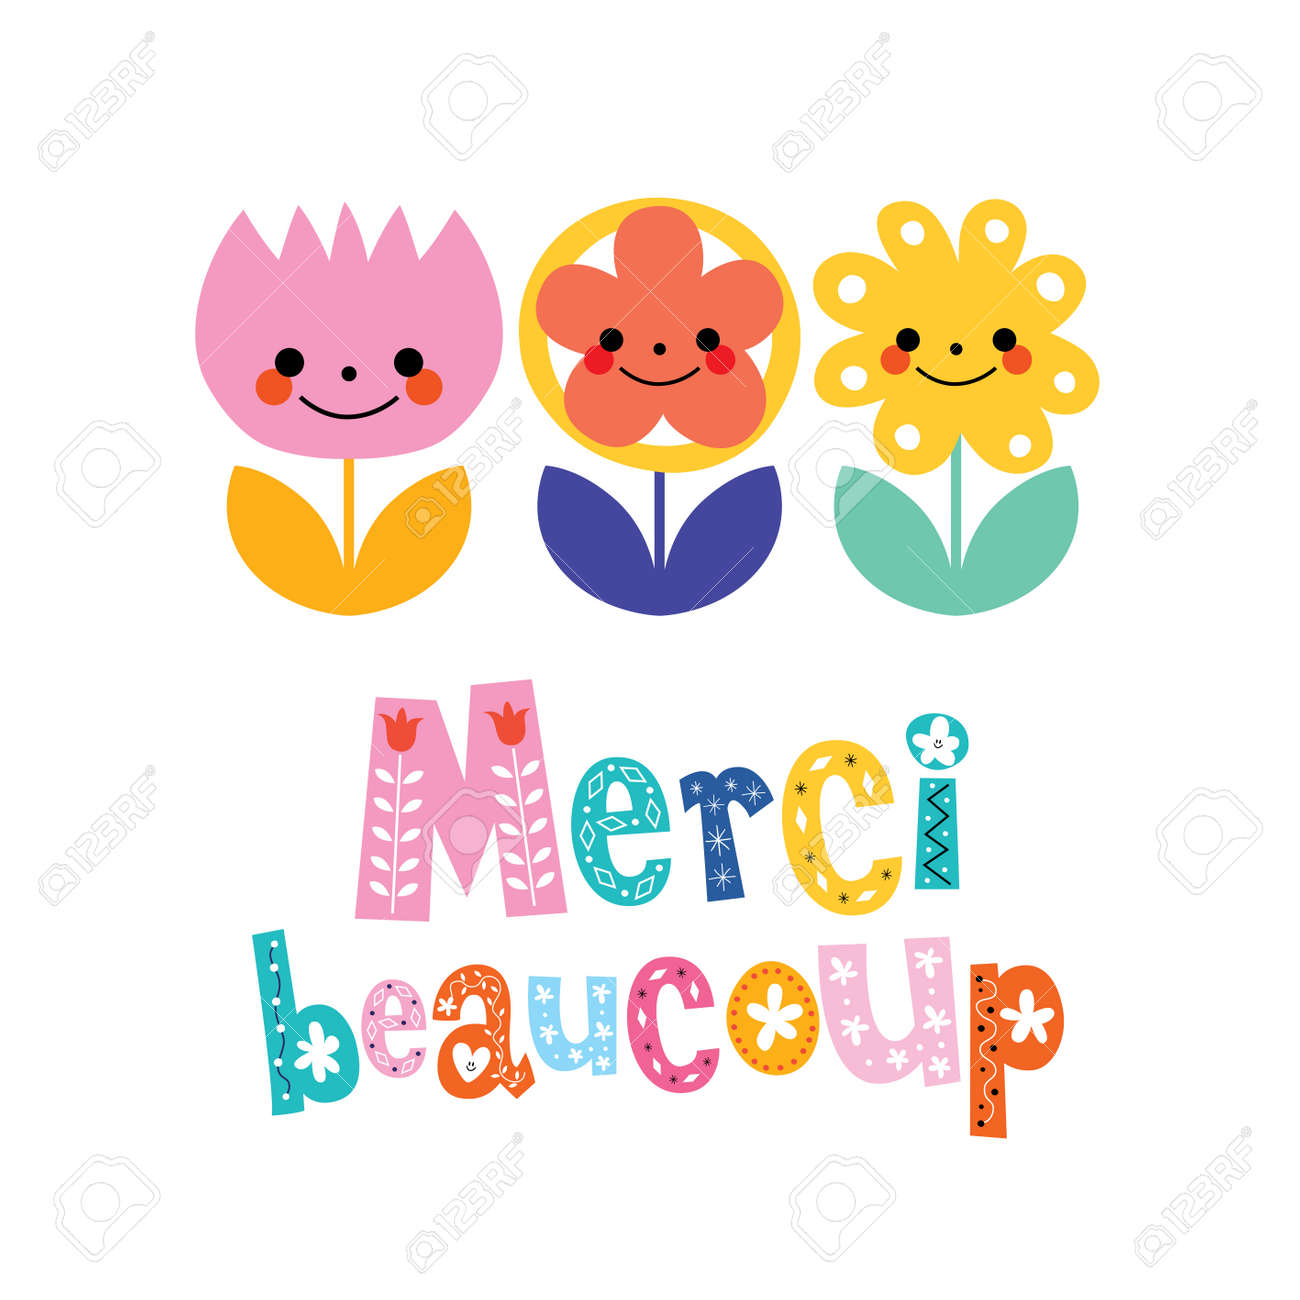 Merci beaucoup thank you very much in french greeting card royalty merci beaucoup thank you very much in french greeting card stock vector 59022276 m4hsunfo